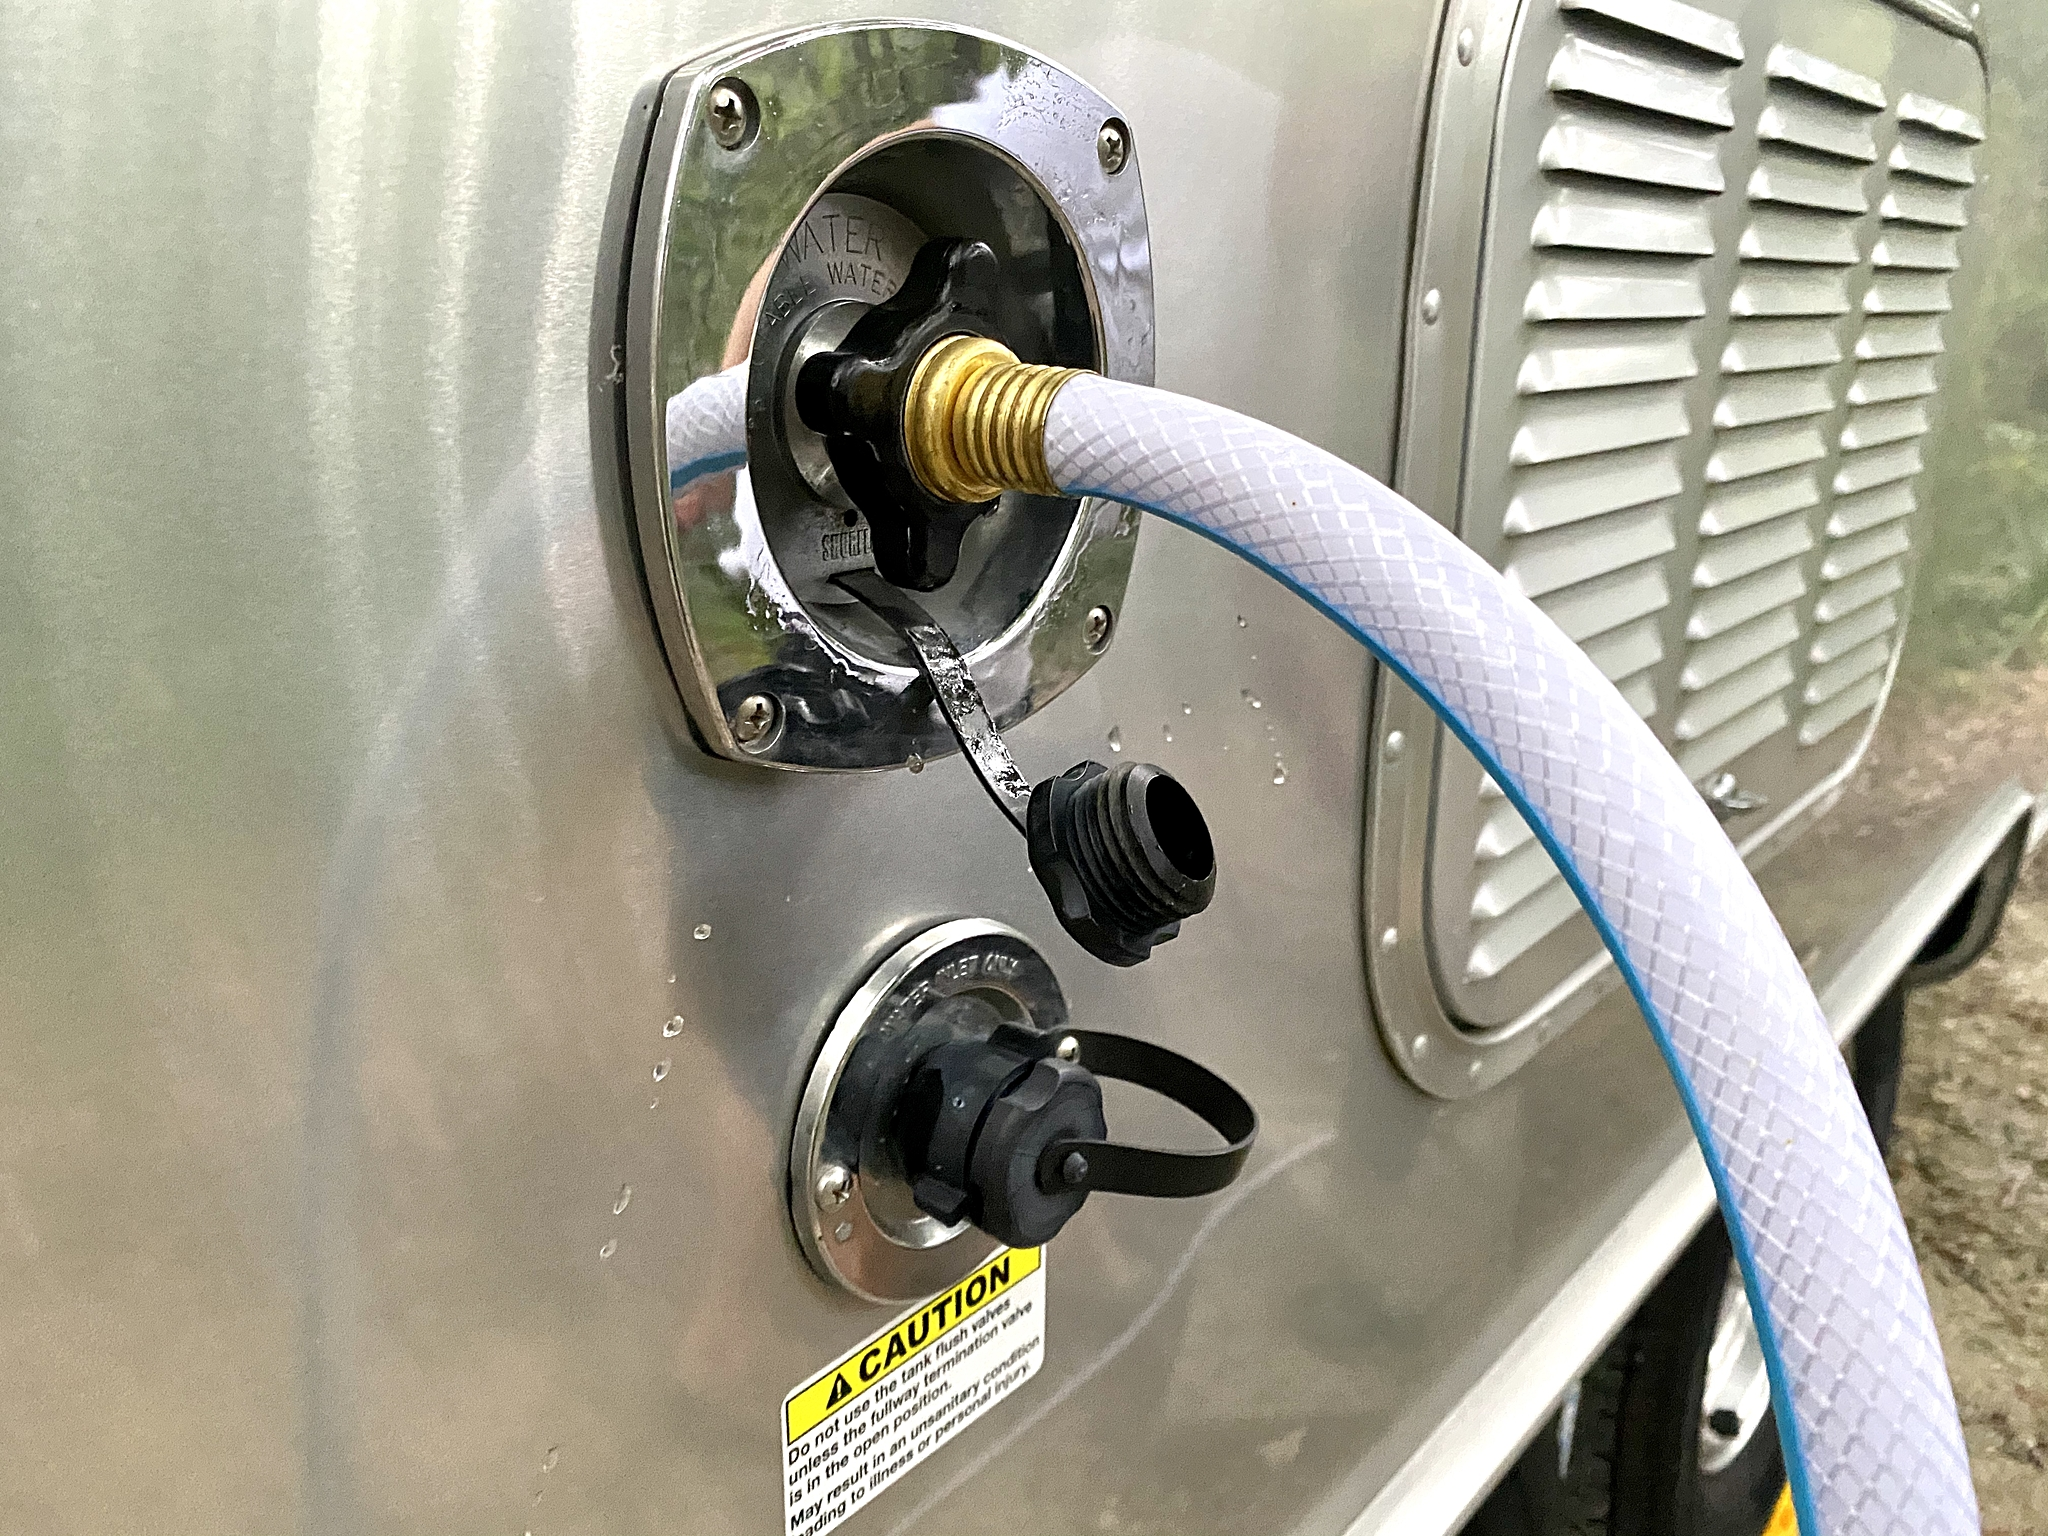 Fresh water hose what to buy for a new rv